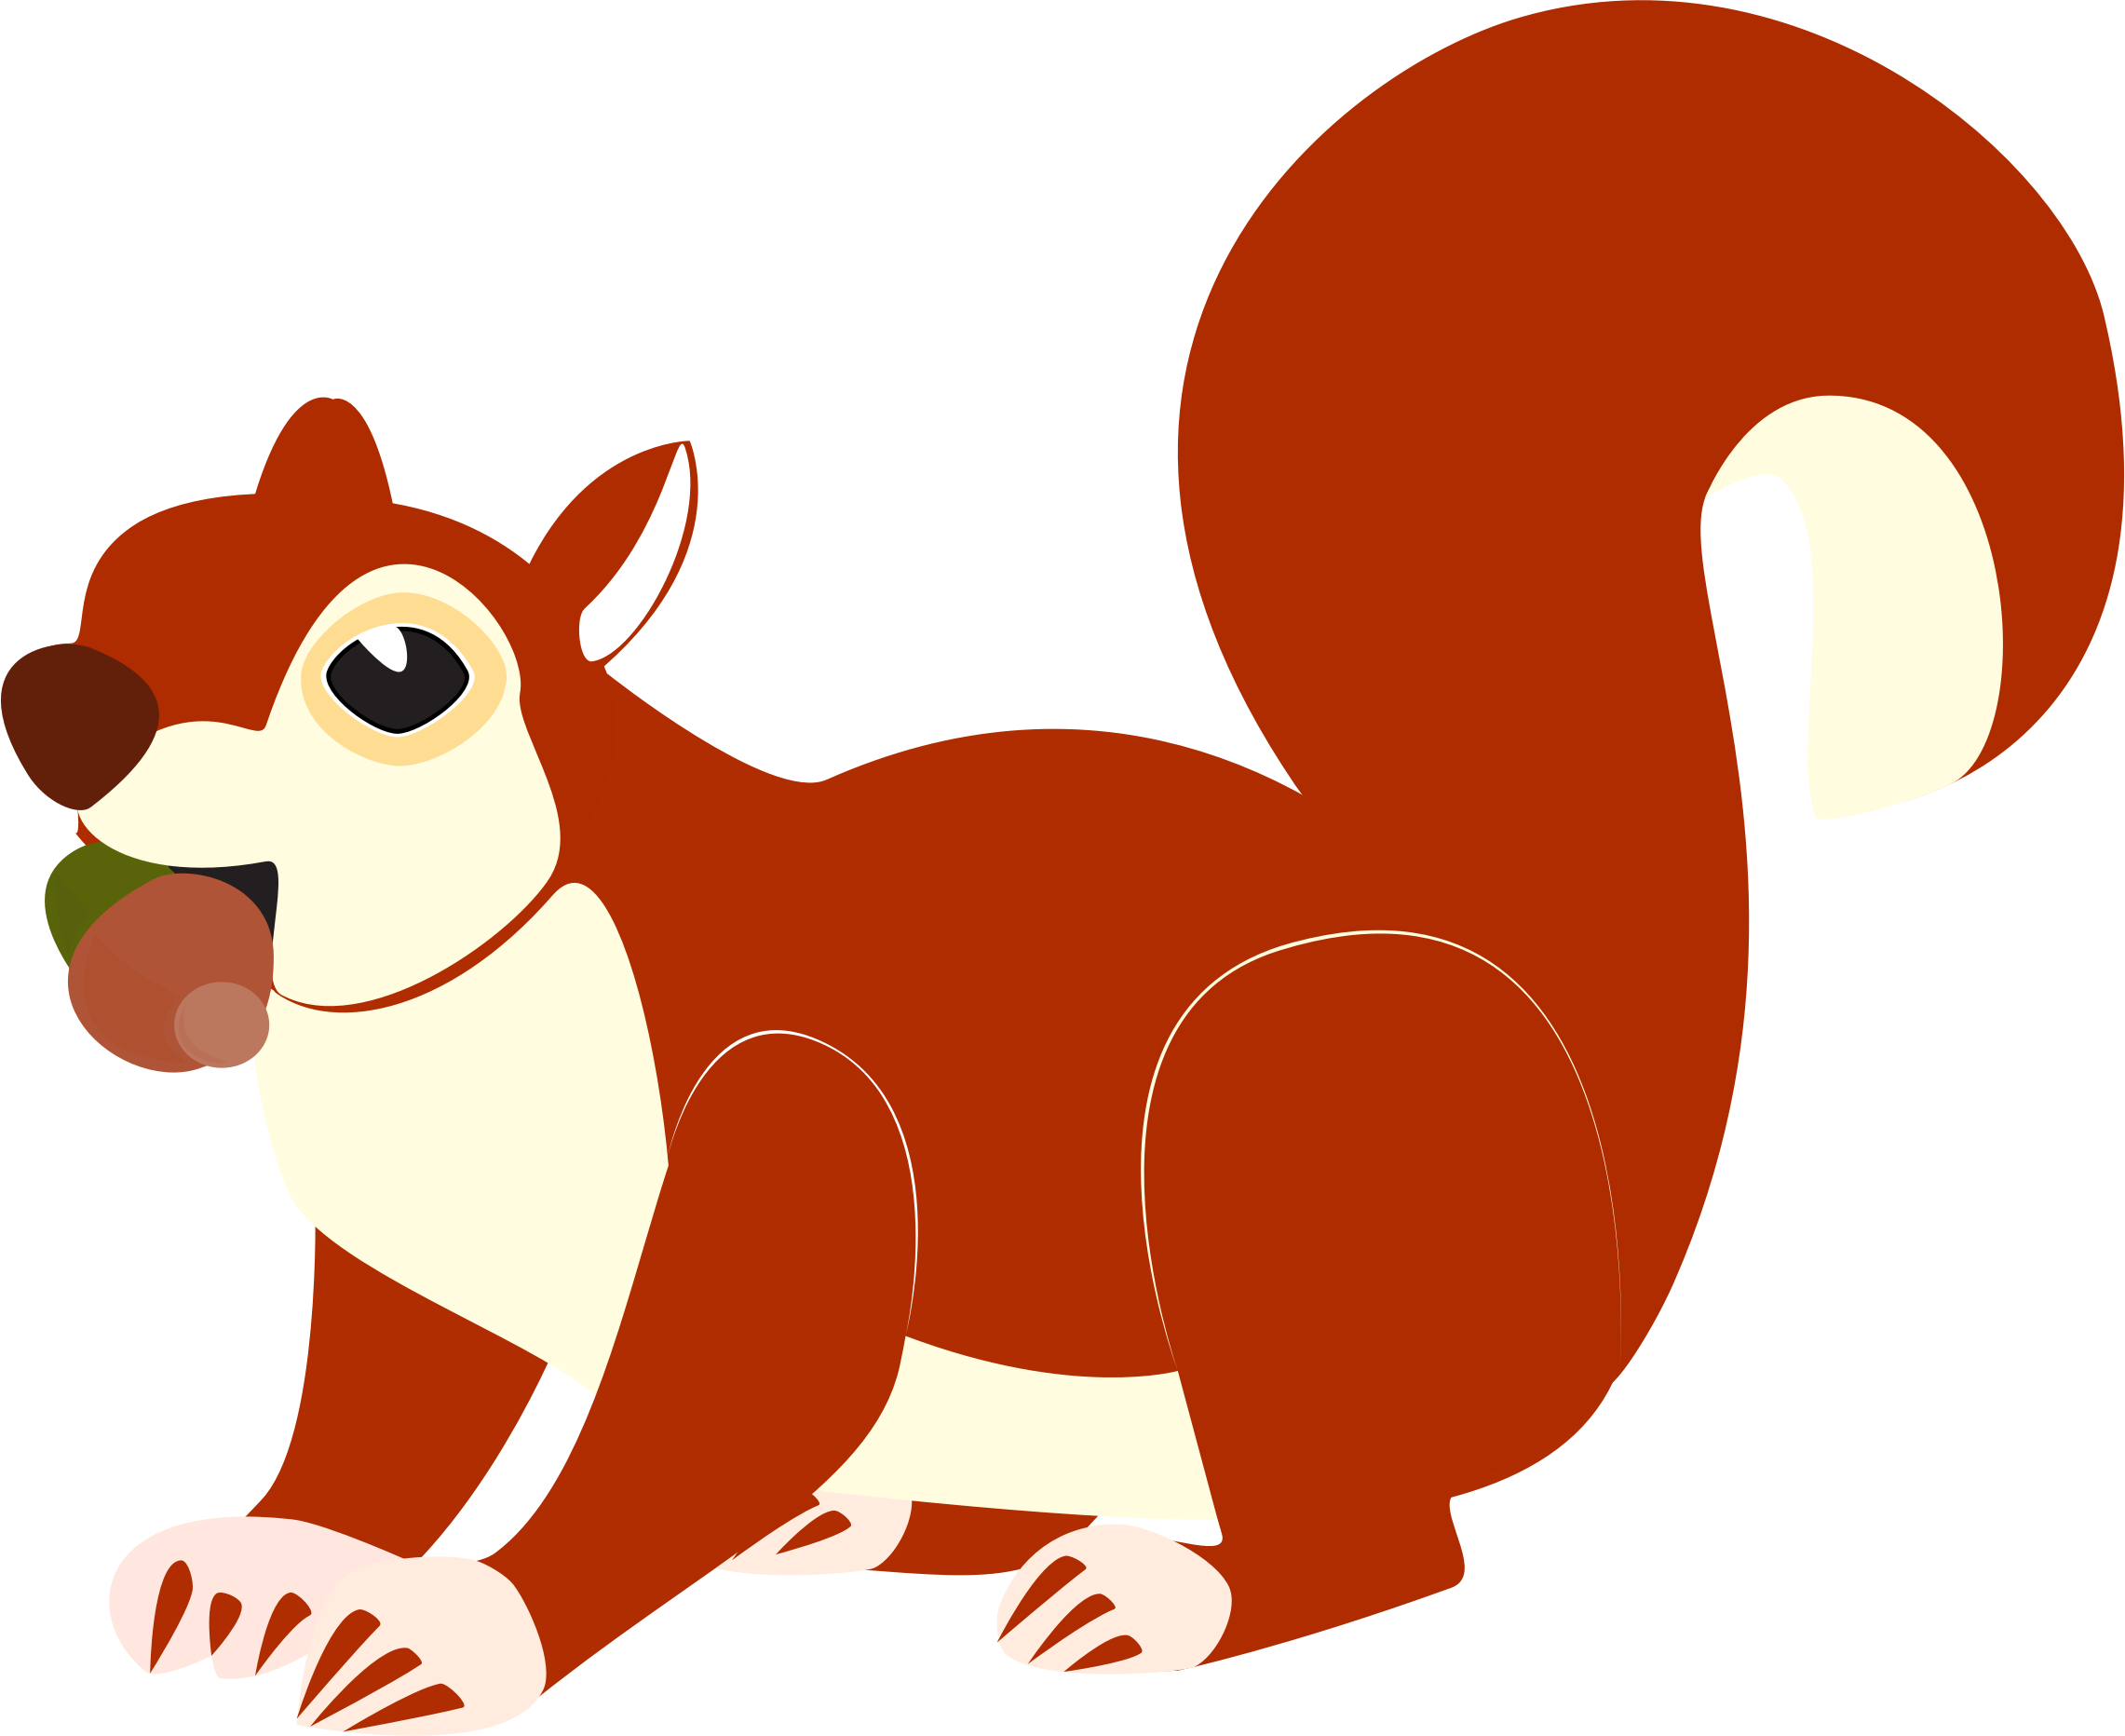 Christmas squirrel clipart clip black and white stock Red Squirrel Silhouette at GetDrawings.com | Free for personal use ... clip black and white stock